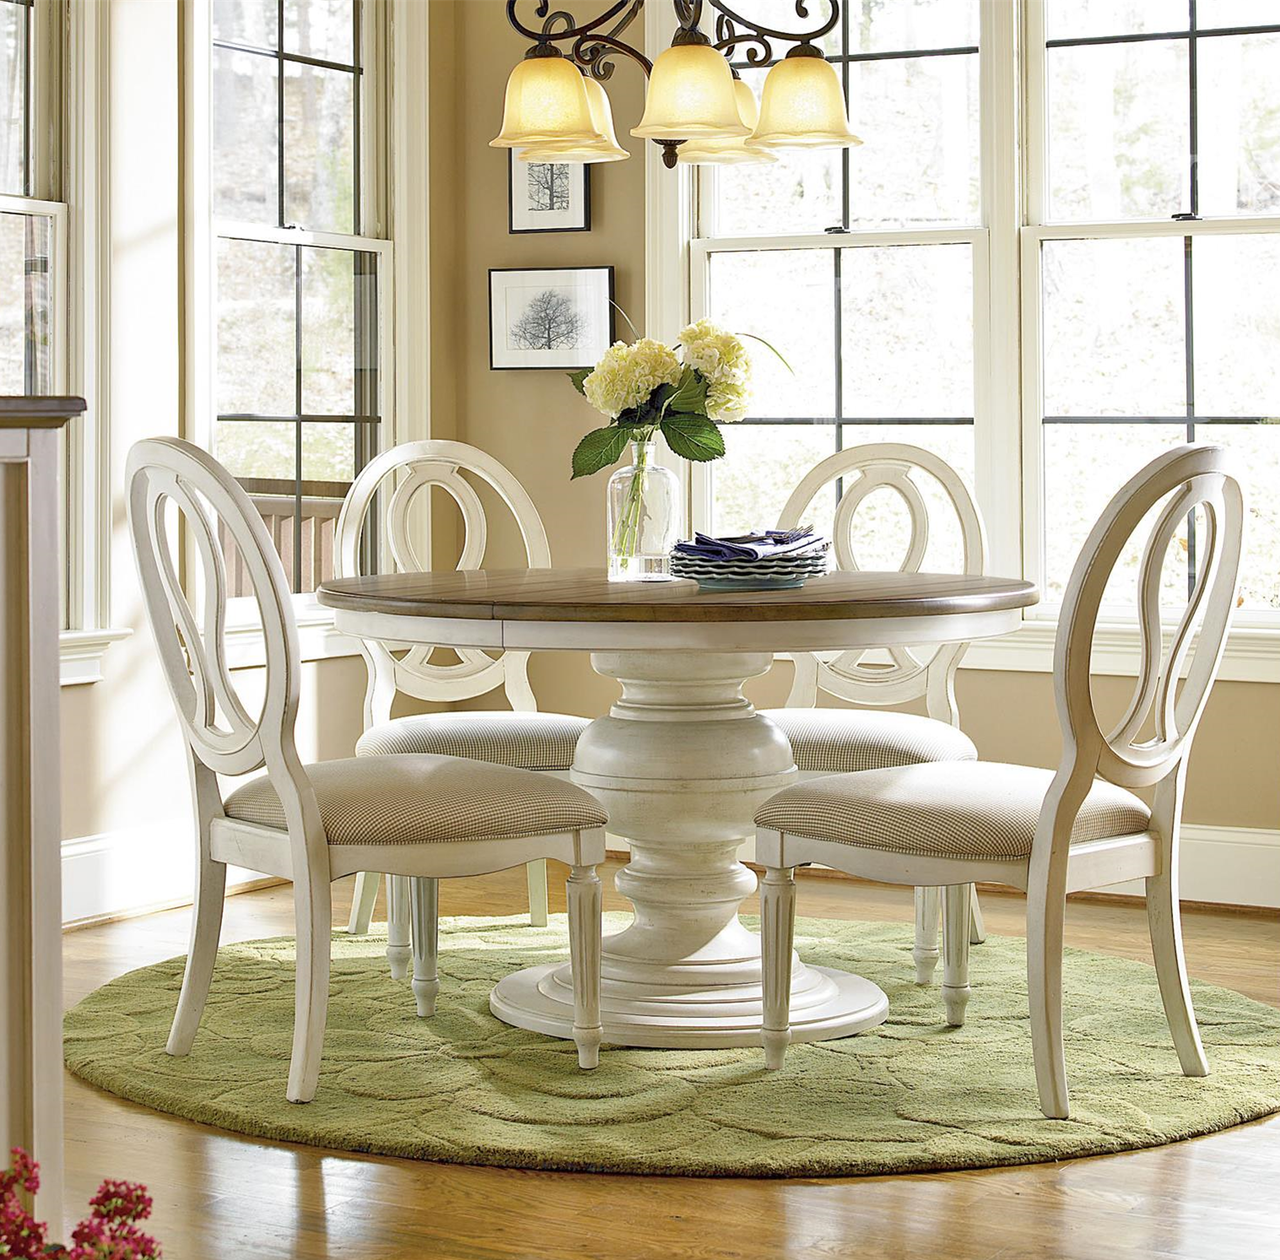 country chic 5 piece round white dining table set in 2019 dinning rh pinterest com